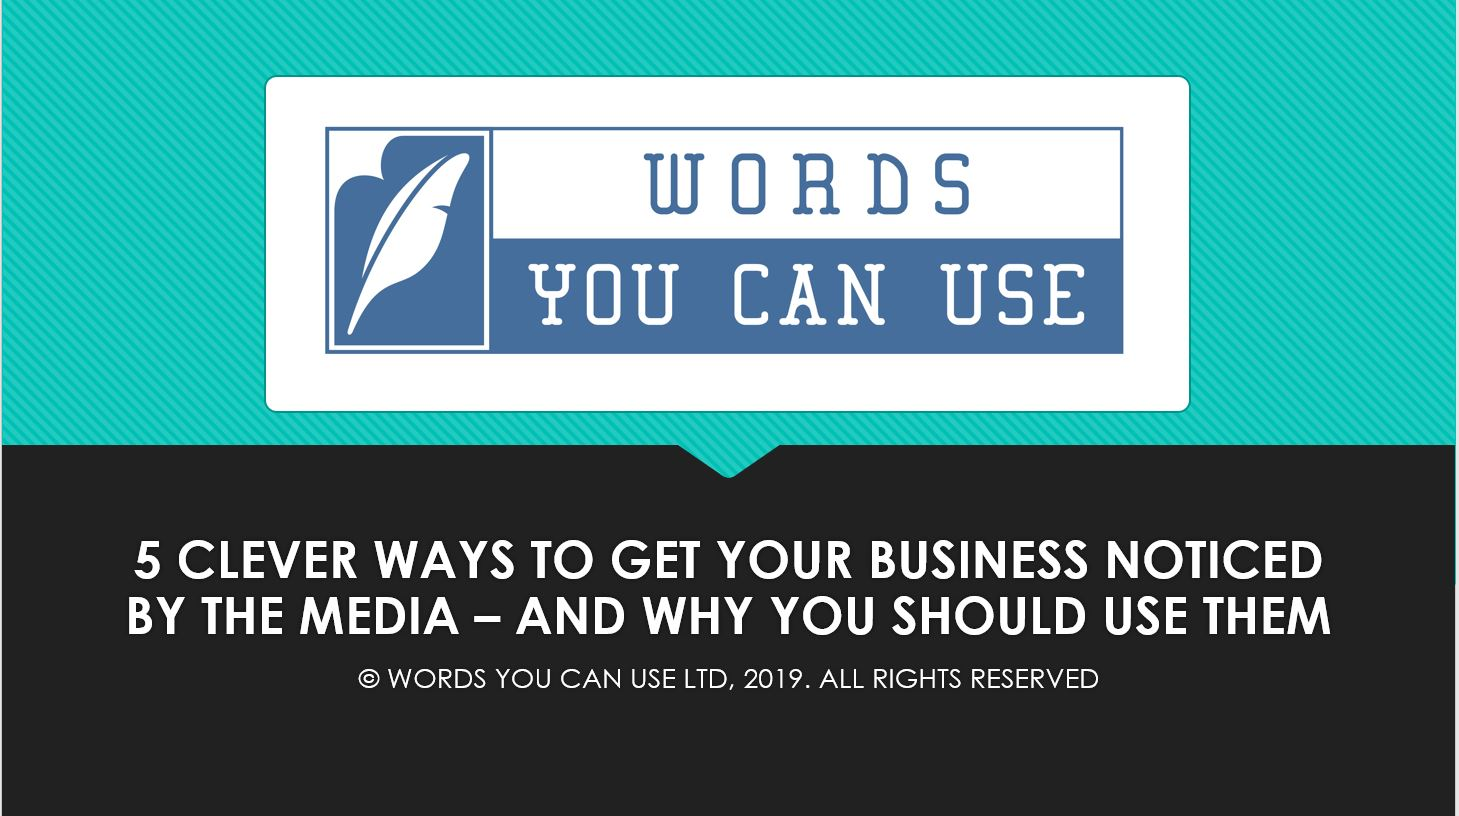 5 Clever Ways to get Your Business Noticed by the Media